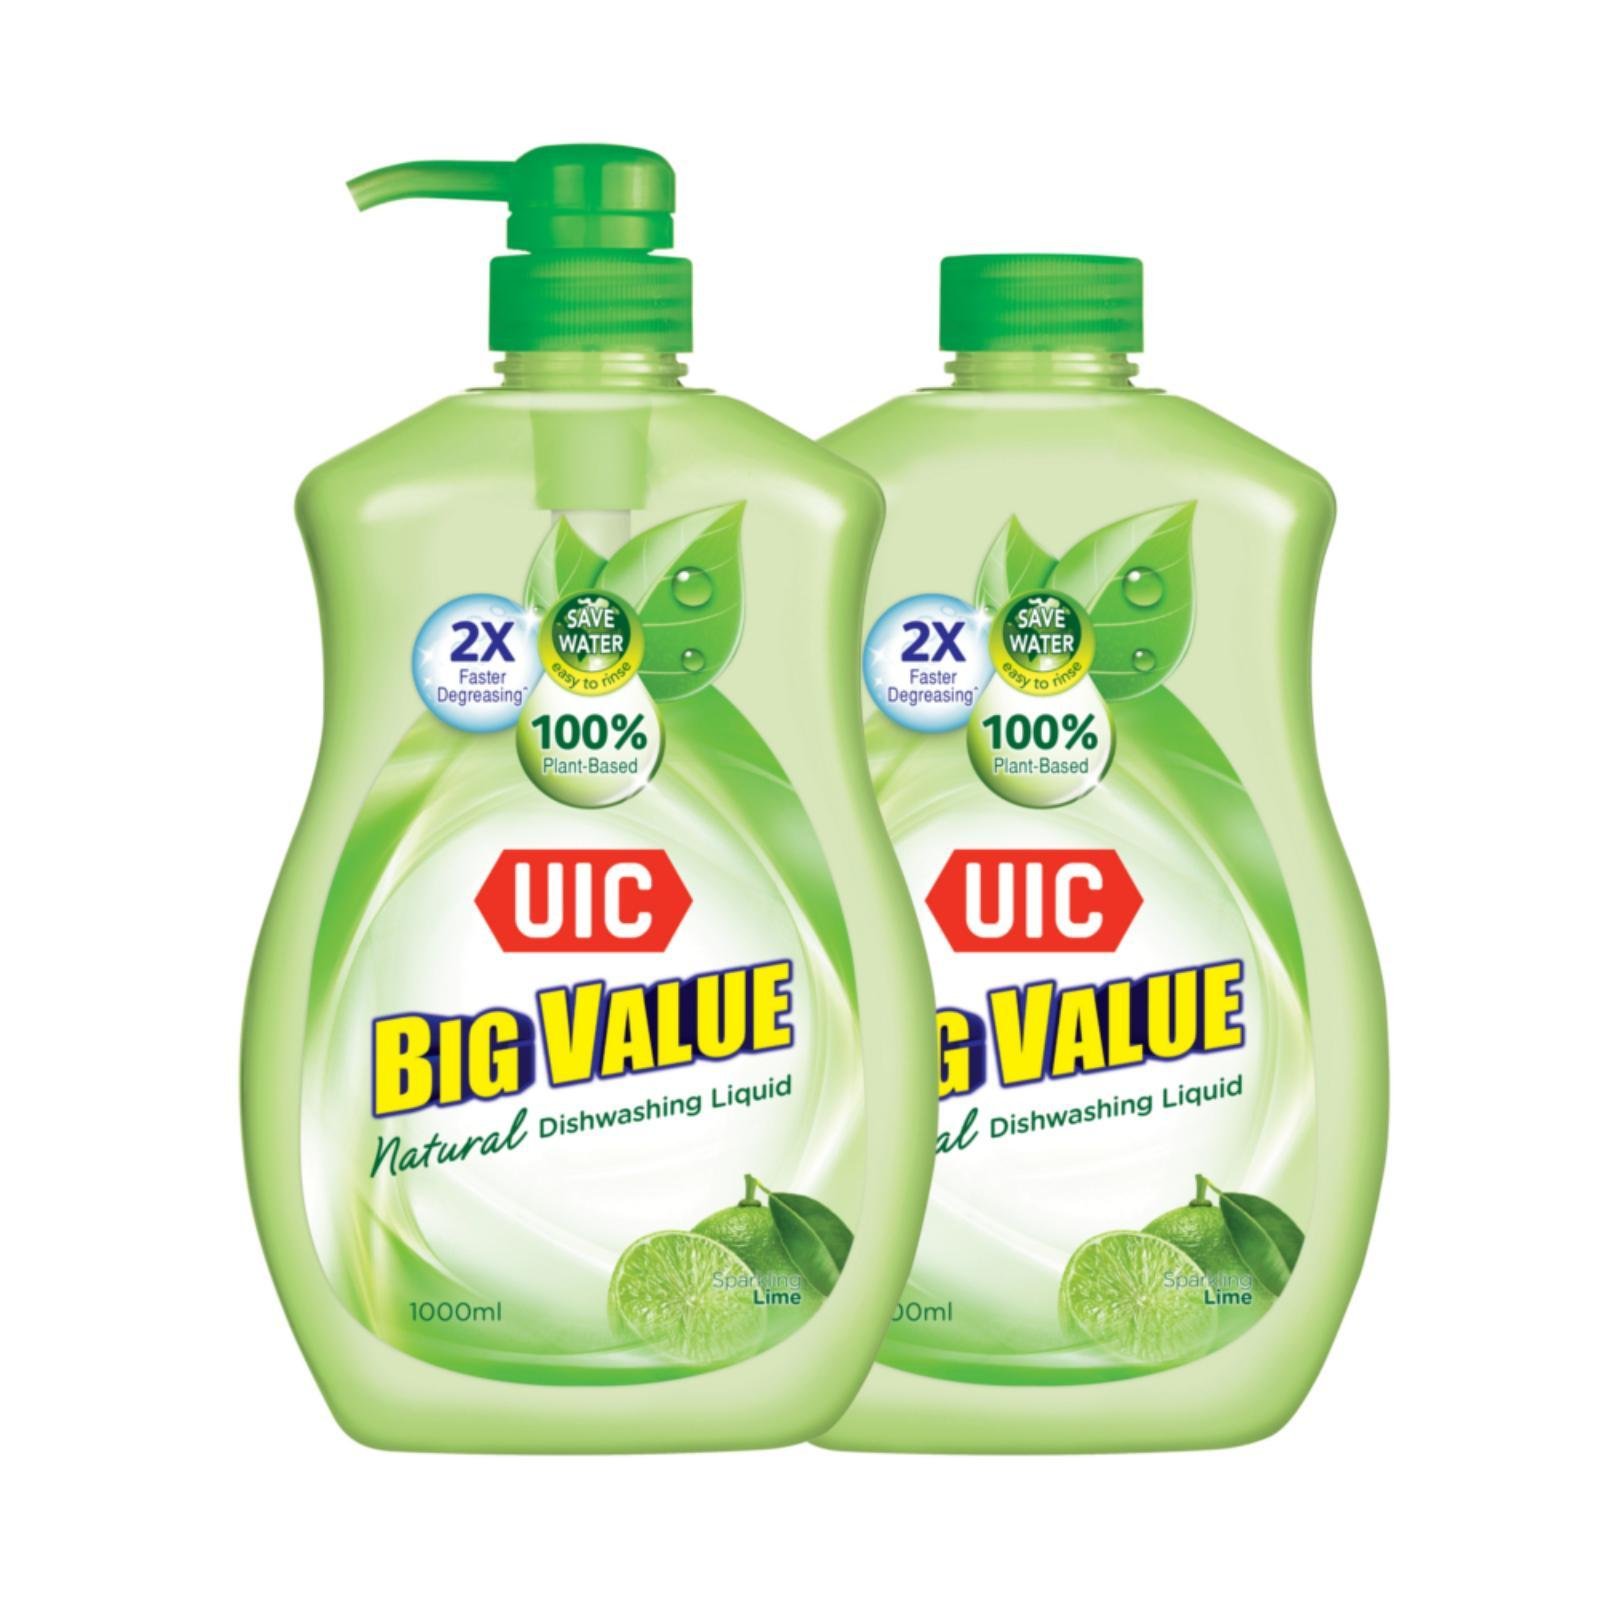 UIC Big Value Natural Lime Dishwashing Liquid Twin Pack